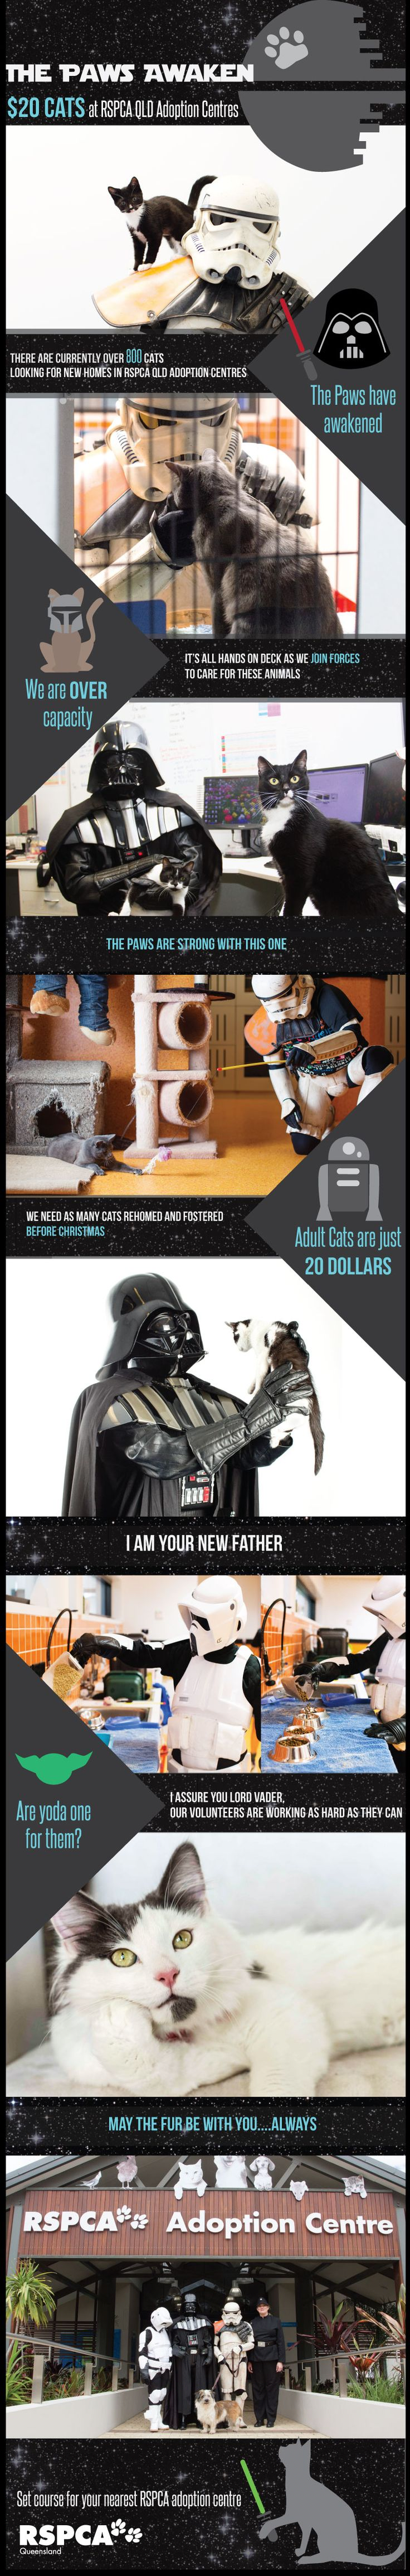 The Paws Awaken at #RSPCA Queensland. #Adopt an Adult Cat for just $20 until December 31, 2015.  #starwars #cats #rspcaqld